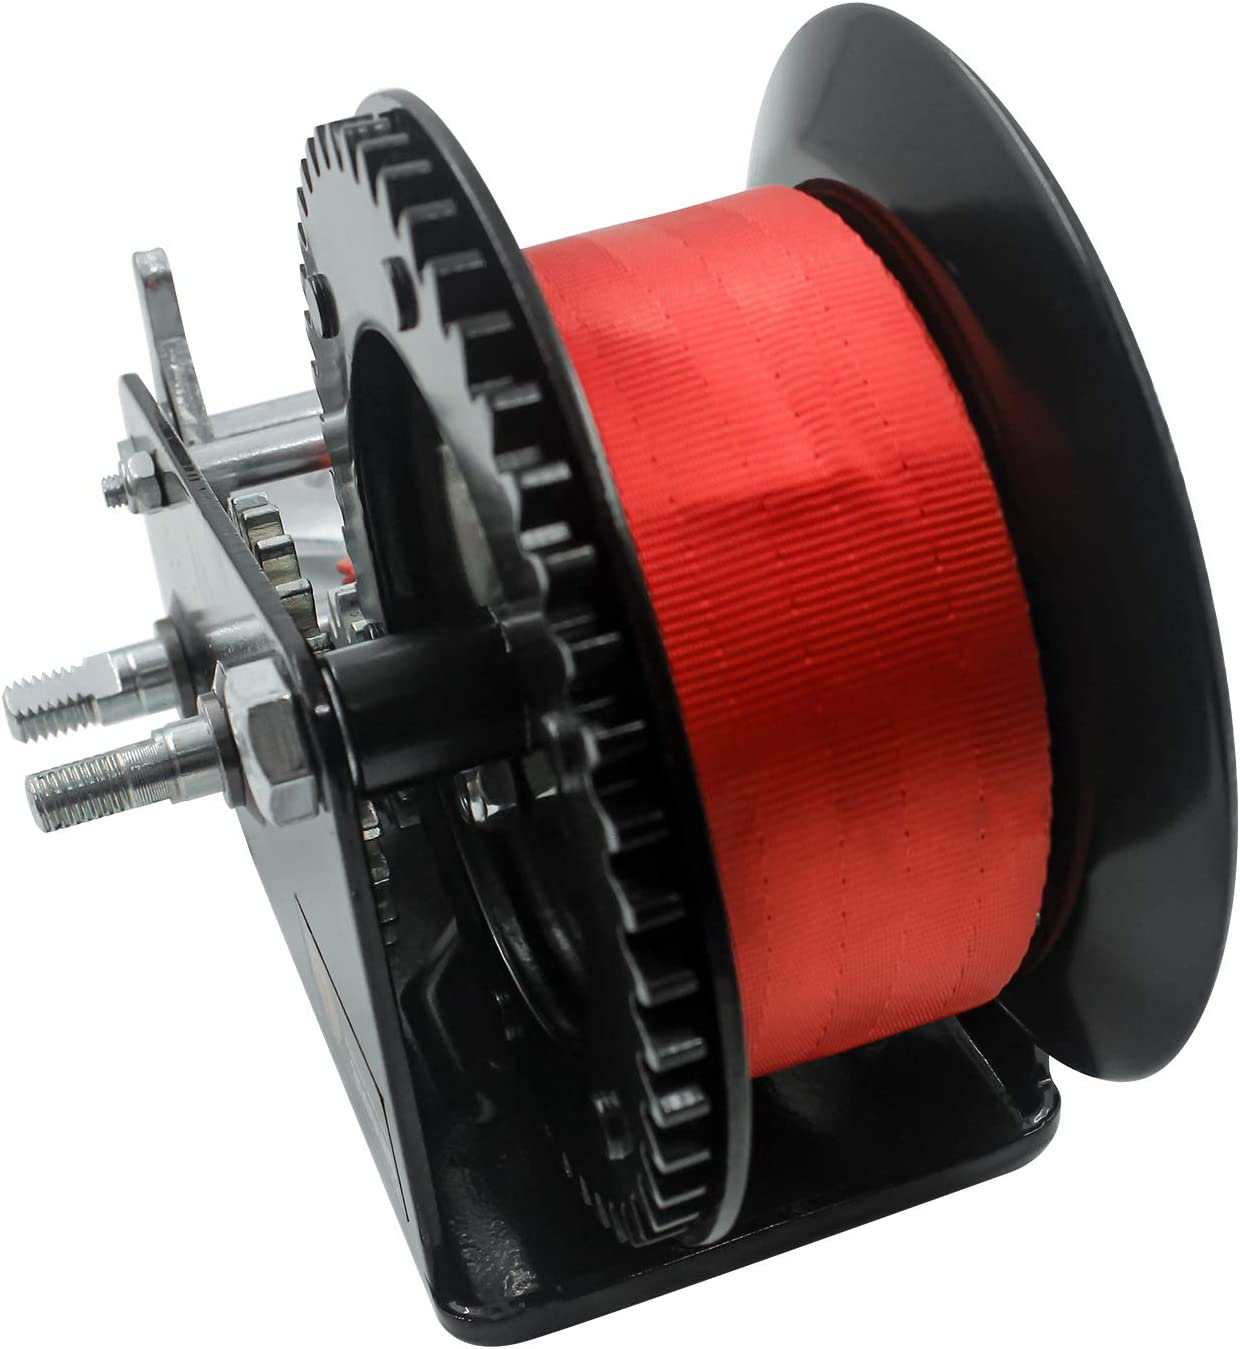 33ft Black Winch and Red Strap Red Nylon Strap 2 Gear Manual Hand Crank for ATV Boat Trailer Truck Auto 10m TYT New 3500lbs Capacity Heavy Duty Hand Winch